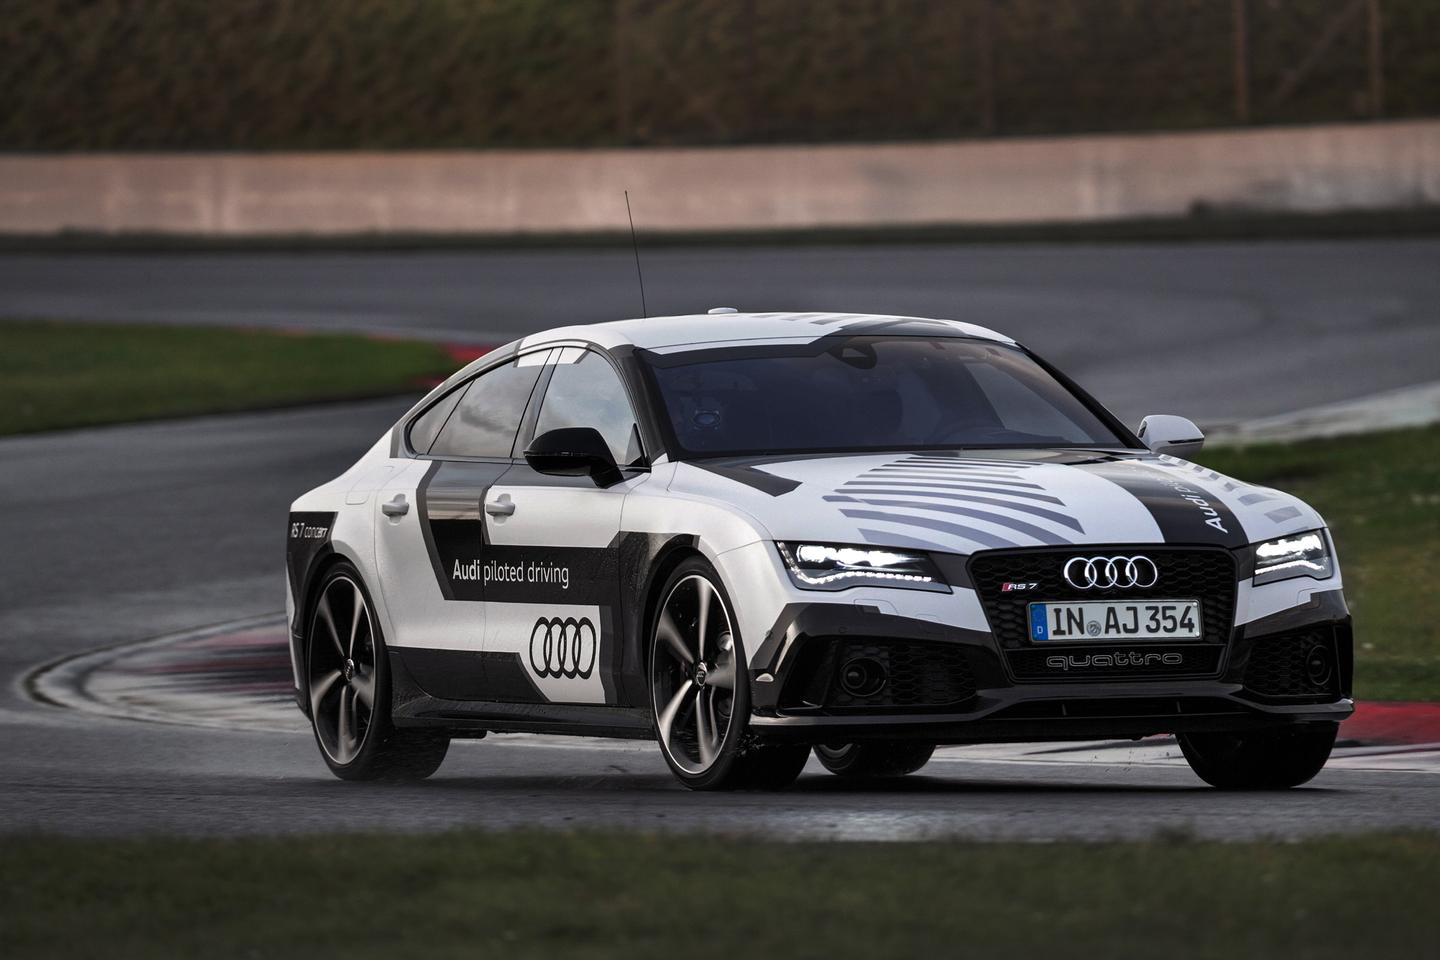 The RS 7 piloted driving concept has completed a lap of the Hockenheim Grand Prix track in just over two minutes